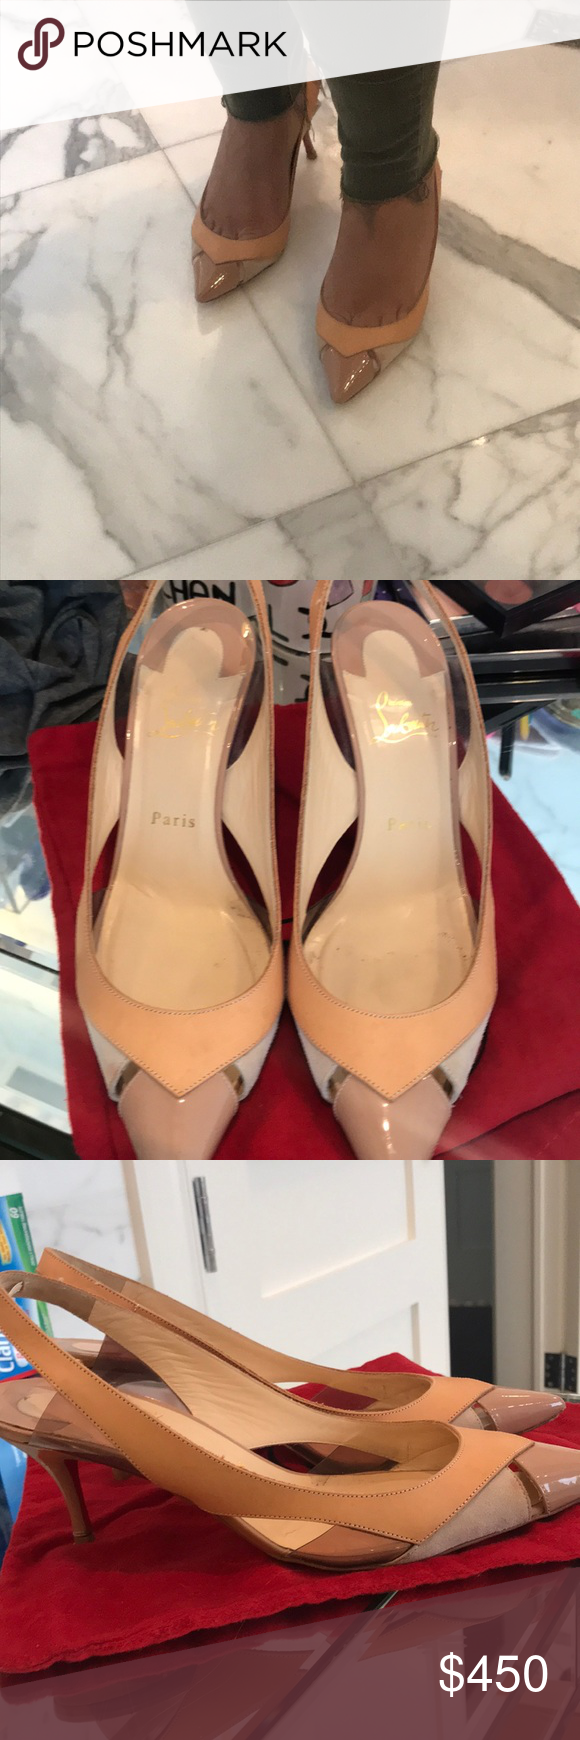 d62c9890daa3 Size 40 1 2 EU  10.5 US comes with one wider size dust bag! Christian  Louboutin Shoes Heels